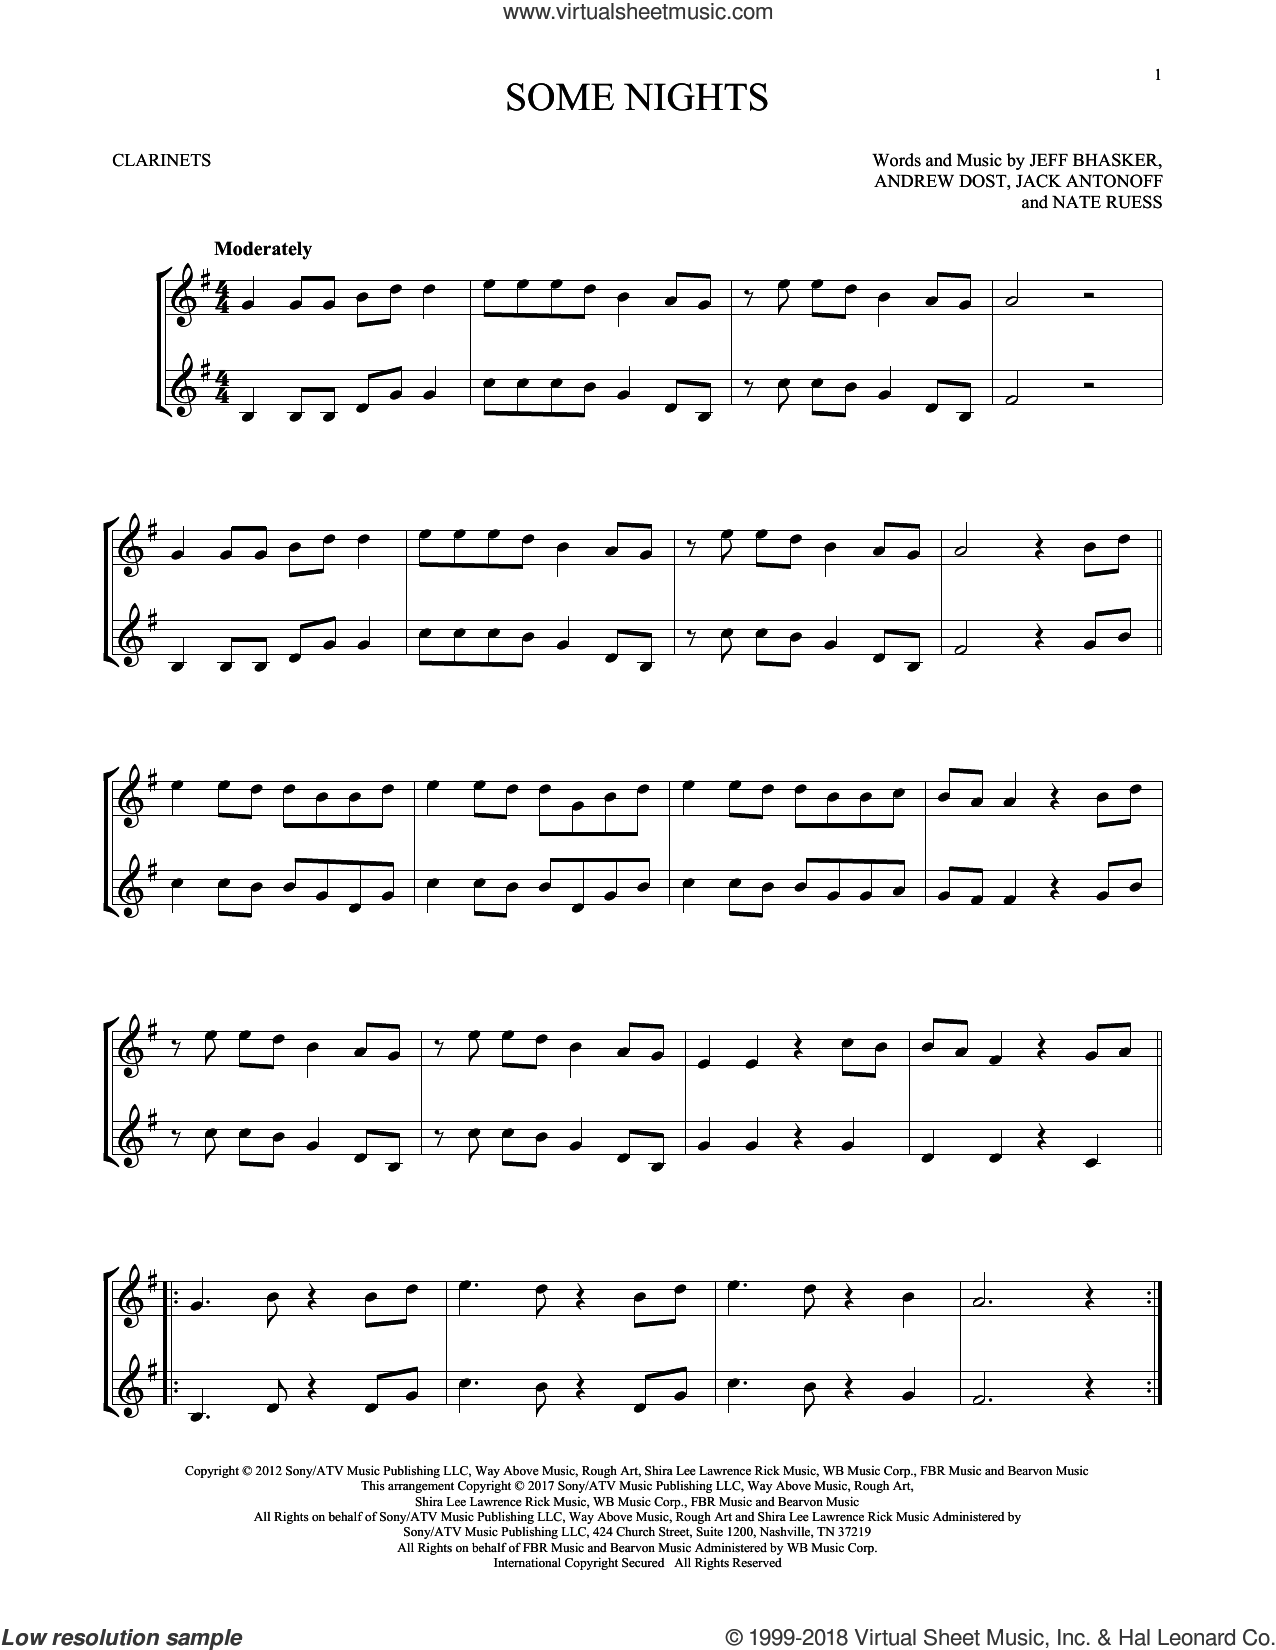 Some Nights sheet music for two clarinets (duets) by Fun, Andrew Dost, Jack Antonoff, Jeff Bhasker and Nate Ruess, intermediate skill level